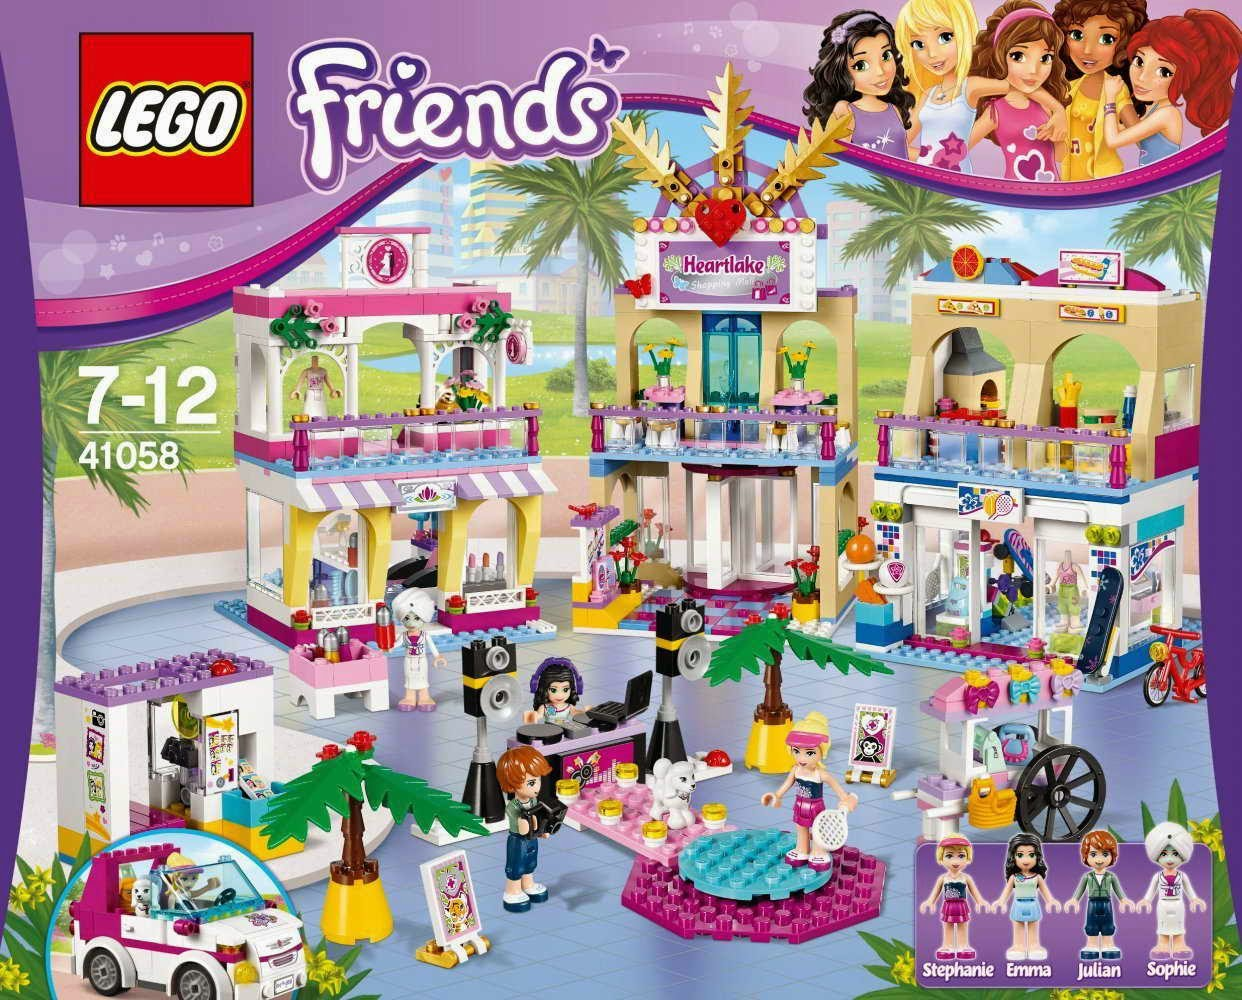 FREE Lego Friends Storage Box (worth £) when you spend £20 on Lego Friends derpychap.ml Could make a nice little extra gift if you.